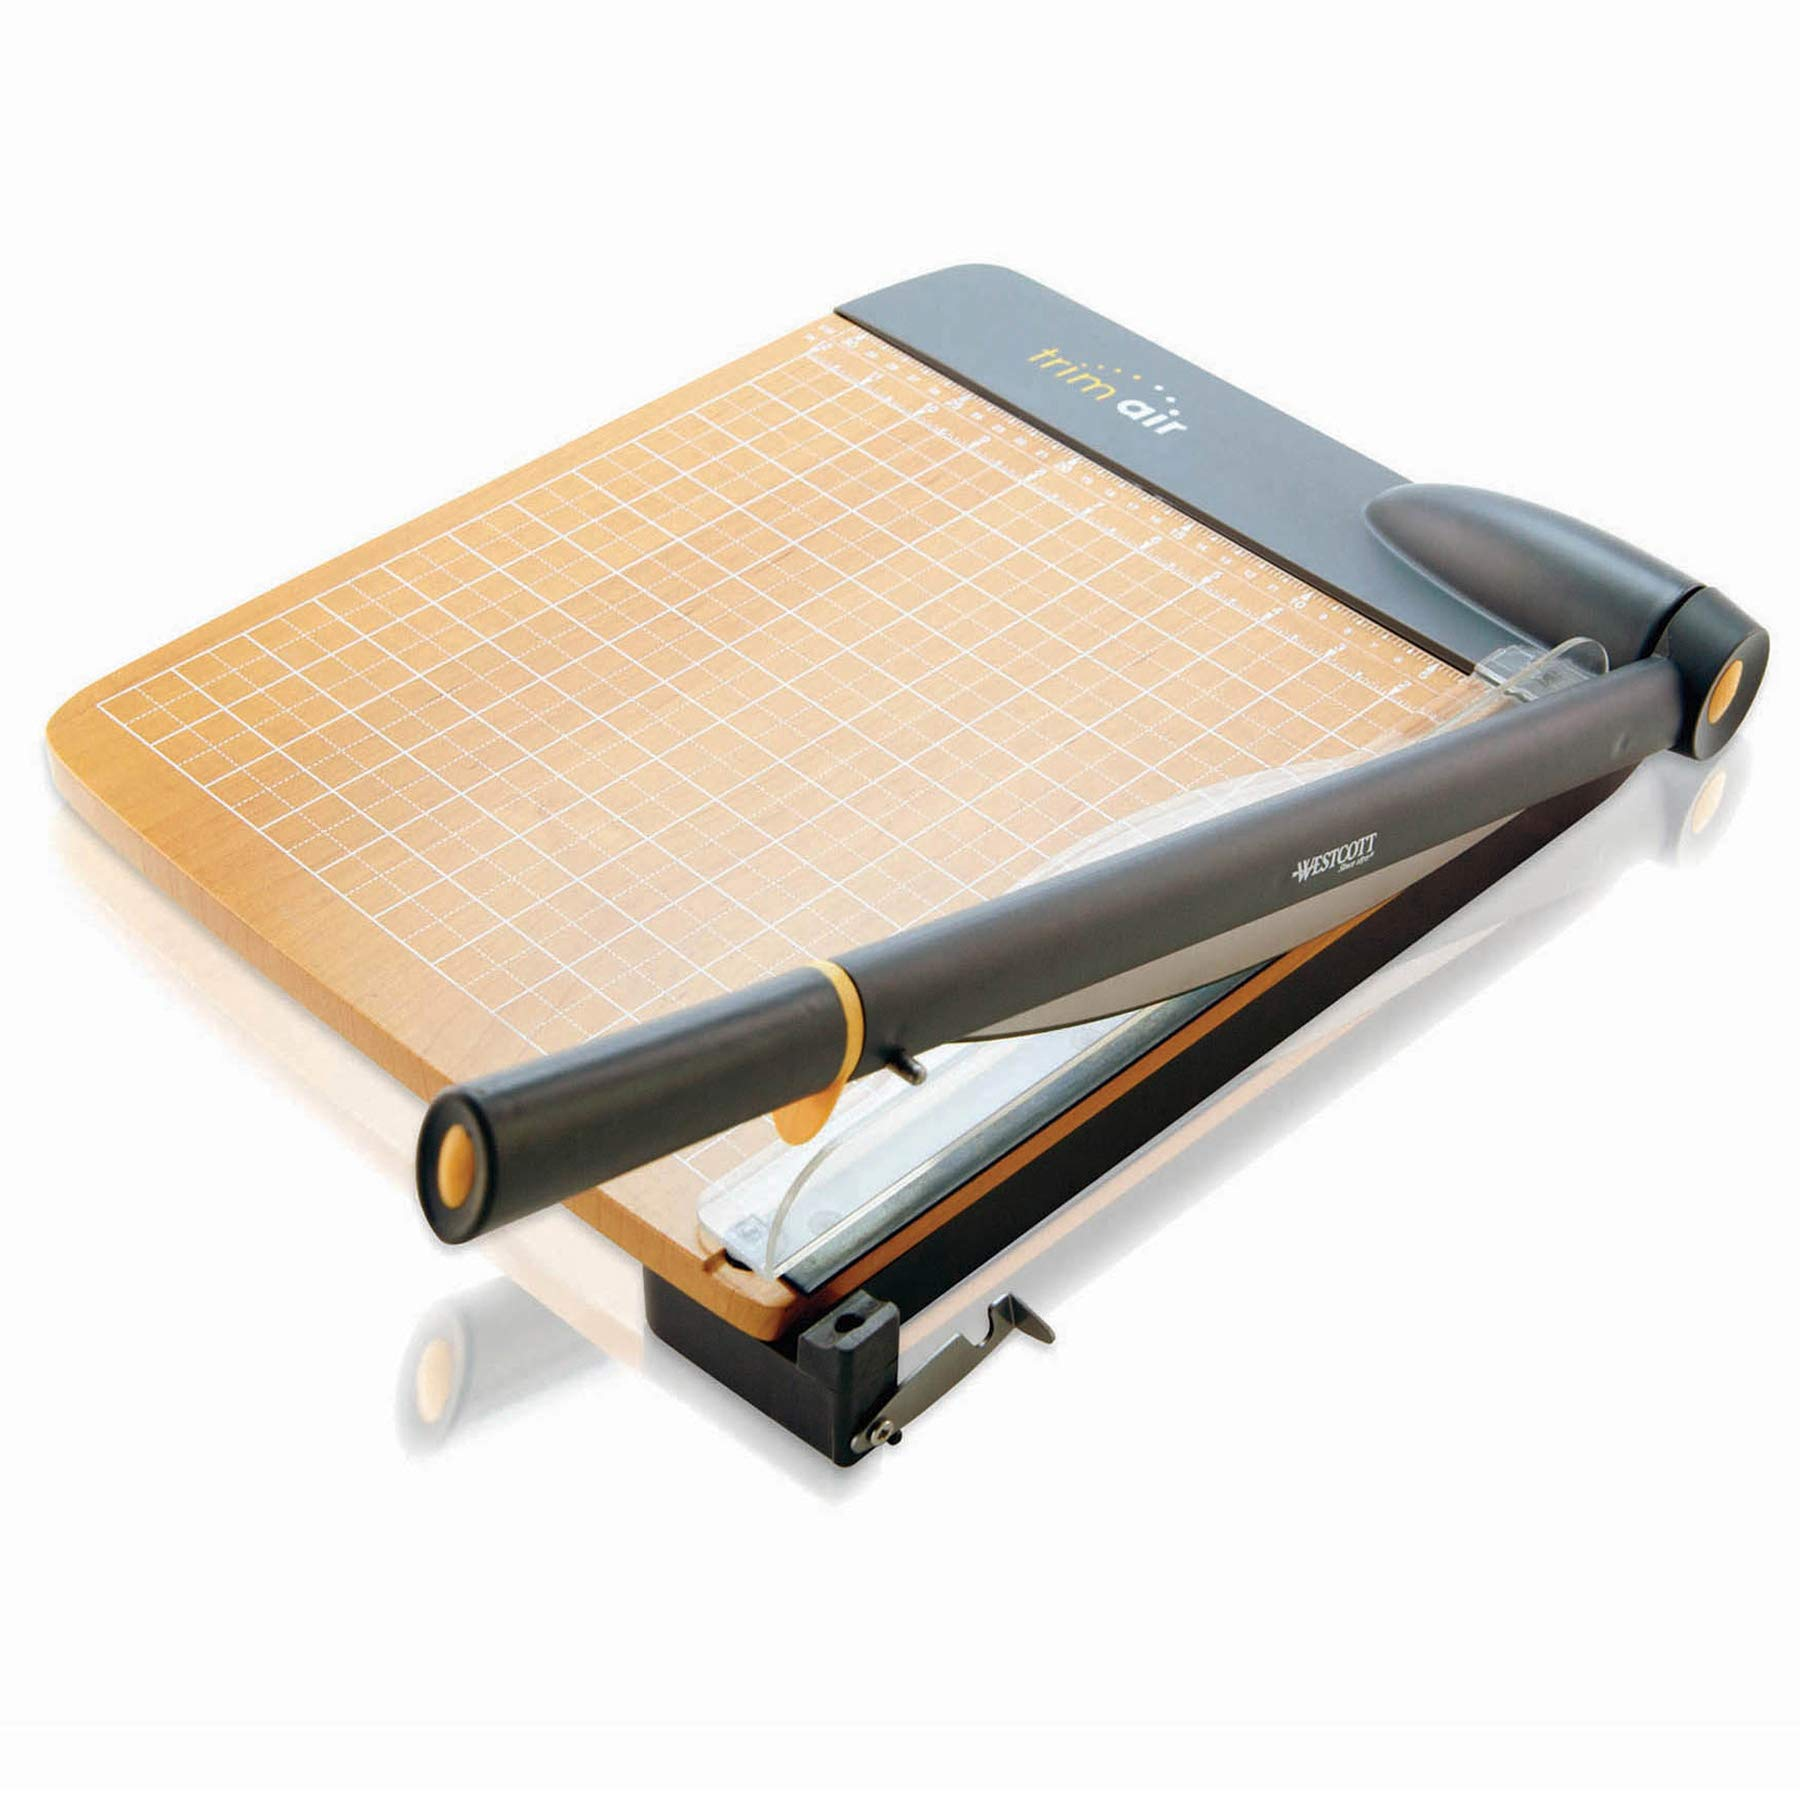 Westcott ACM15107 TrimAir Titanium Wood Guillotine Paper Trimmer with Anti-Microbial Protection, 15''